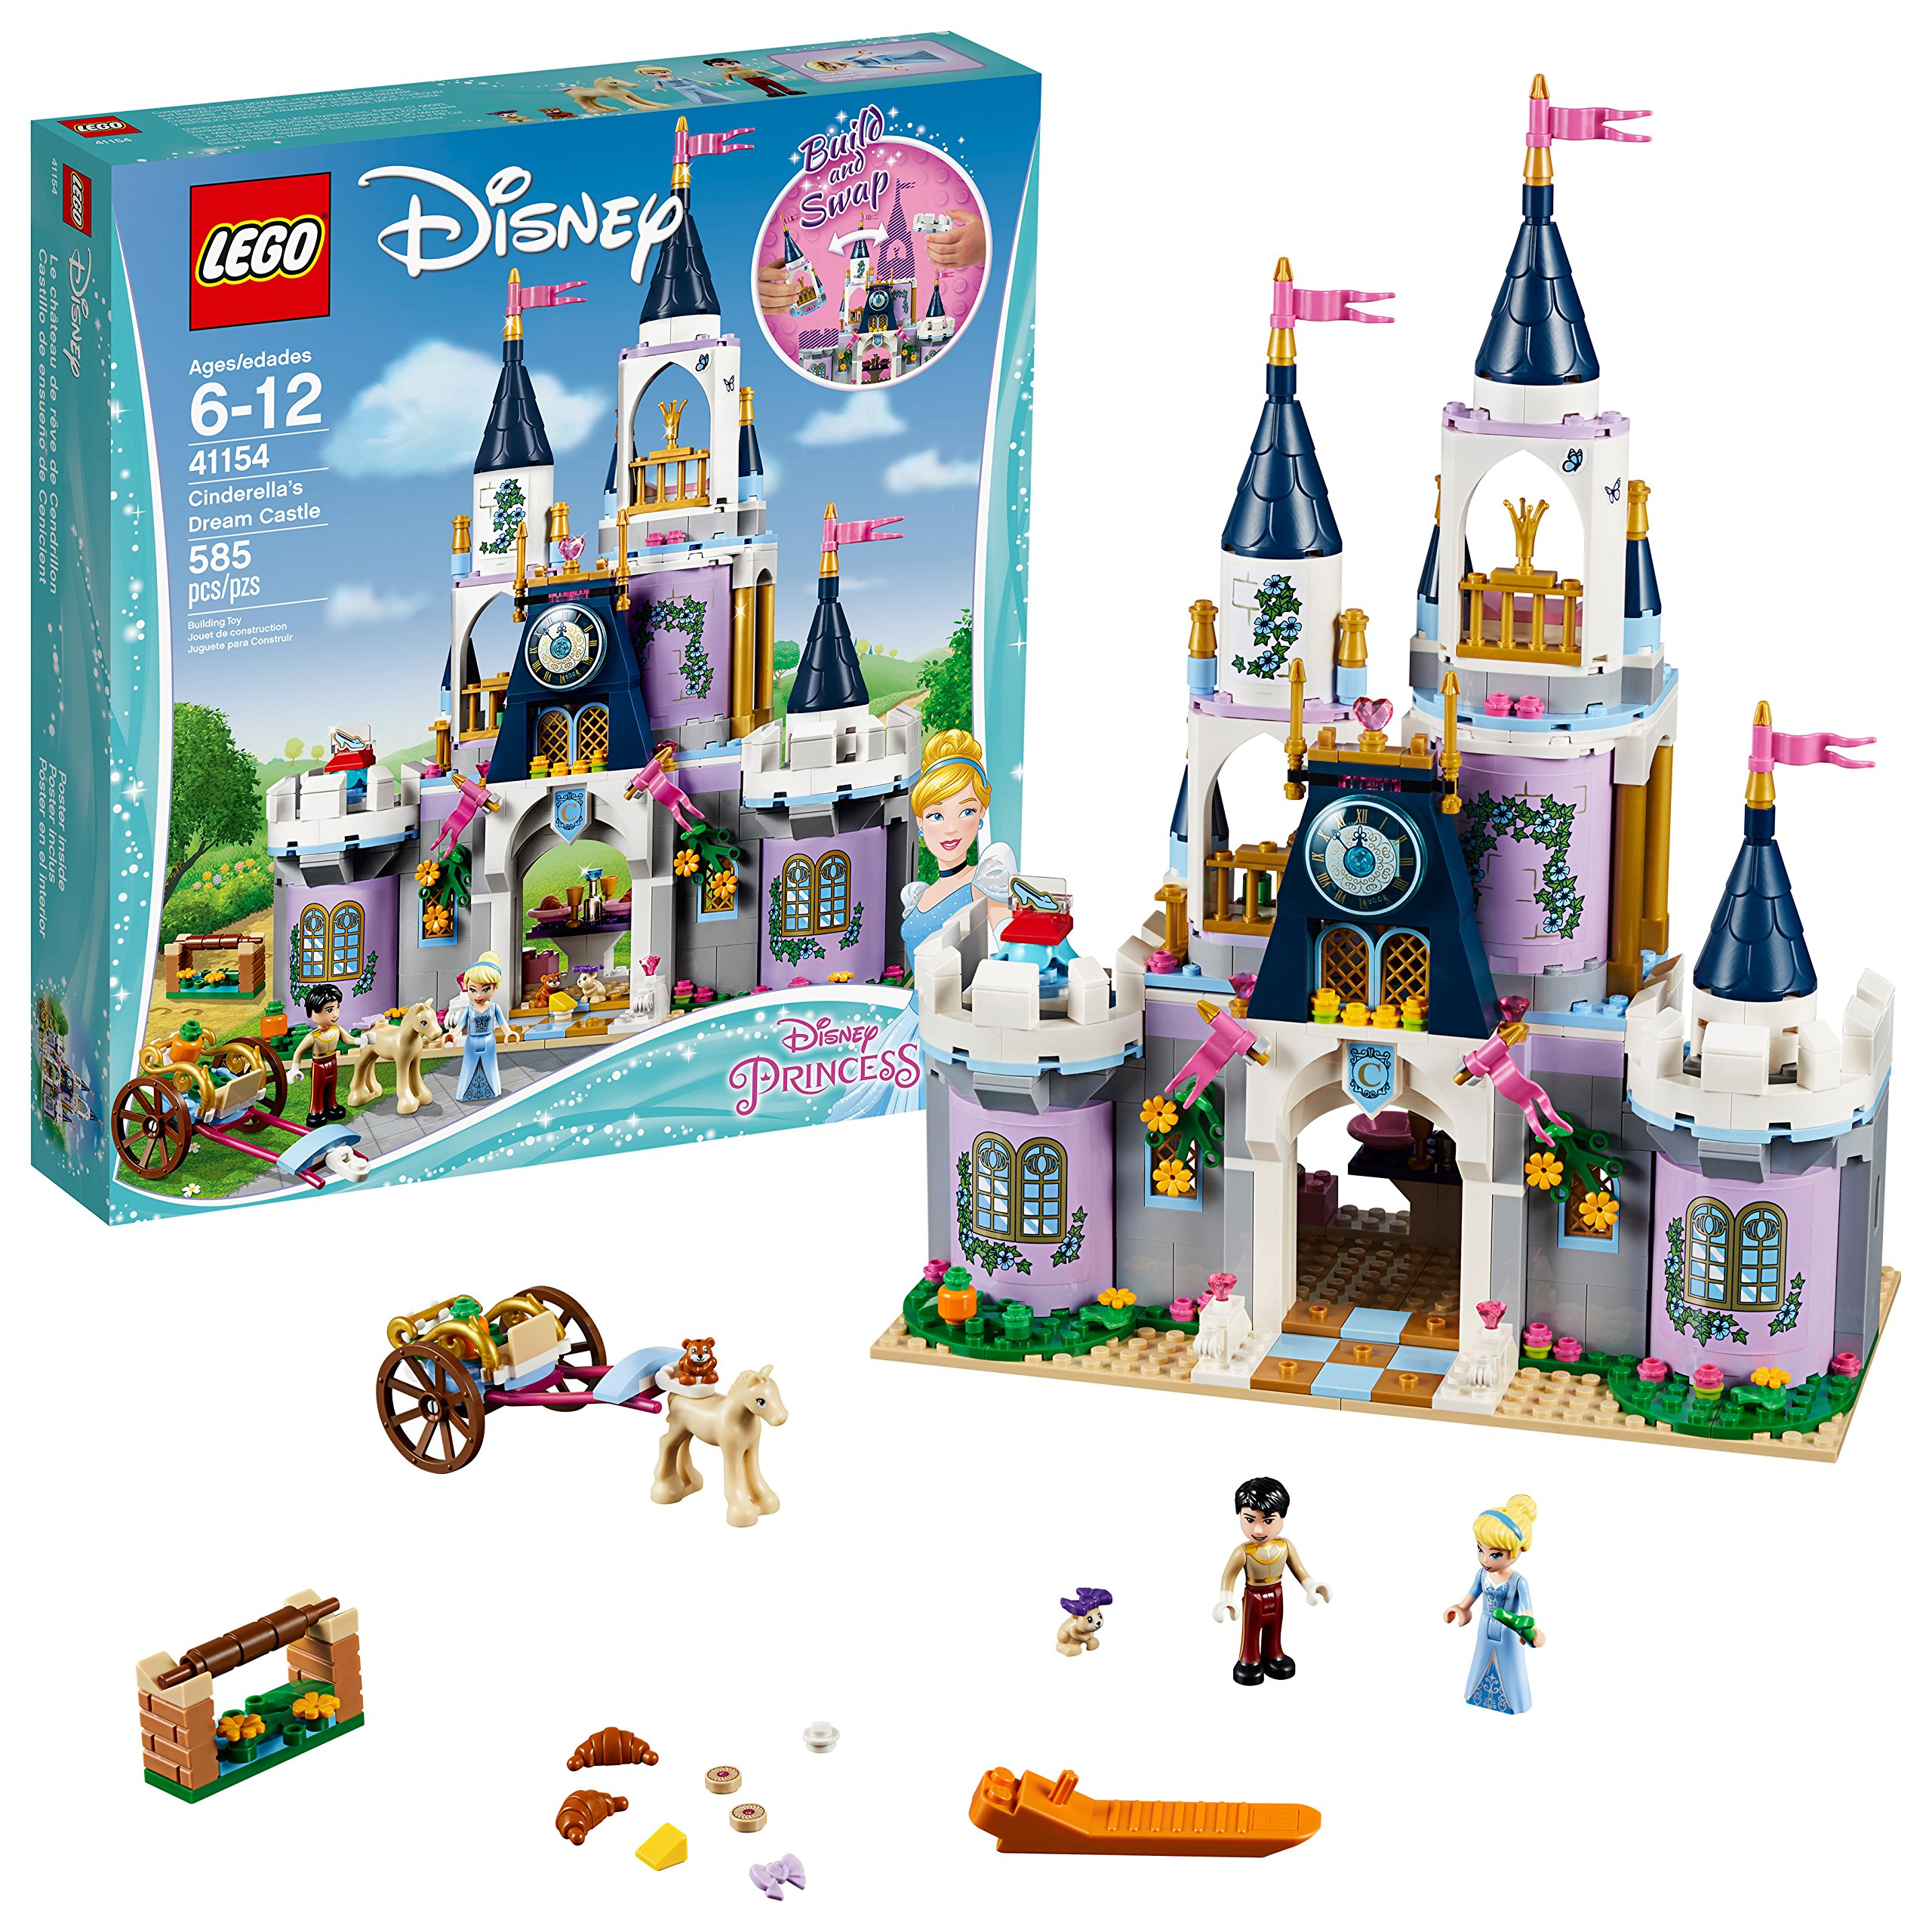 LEGO Disney Princess Cinderella's Dream Castle 41154 Popular Construction Toy for Kids (585 Pieces) by LEGO